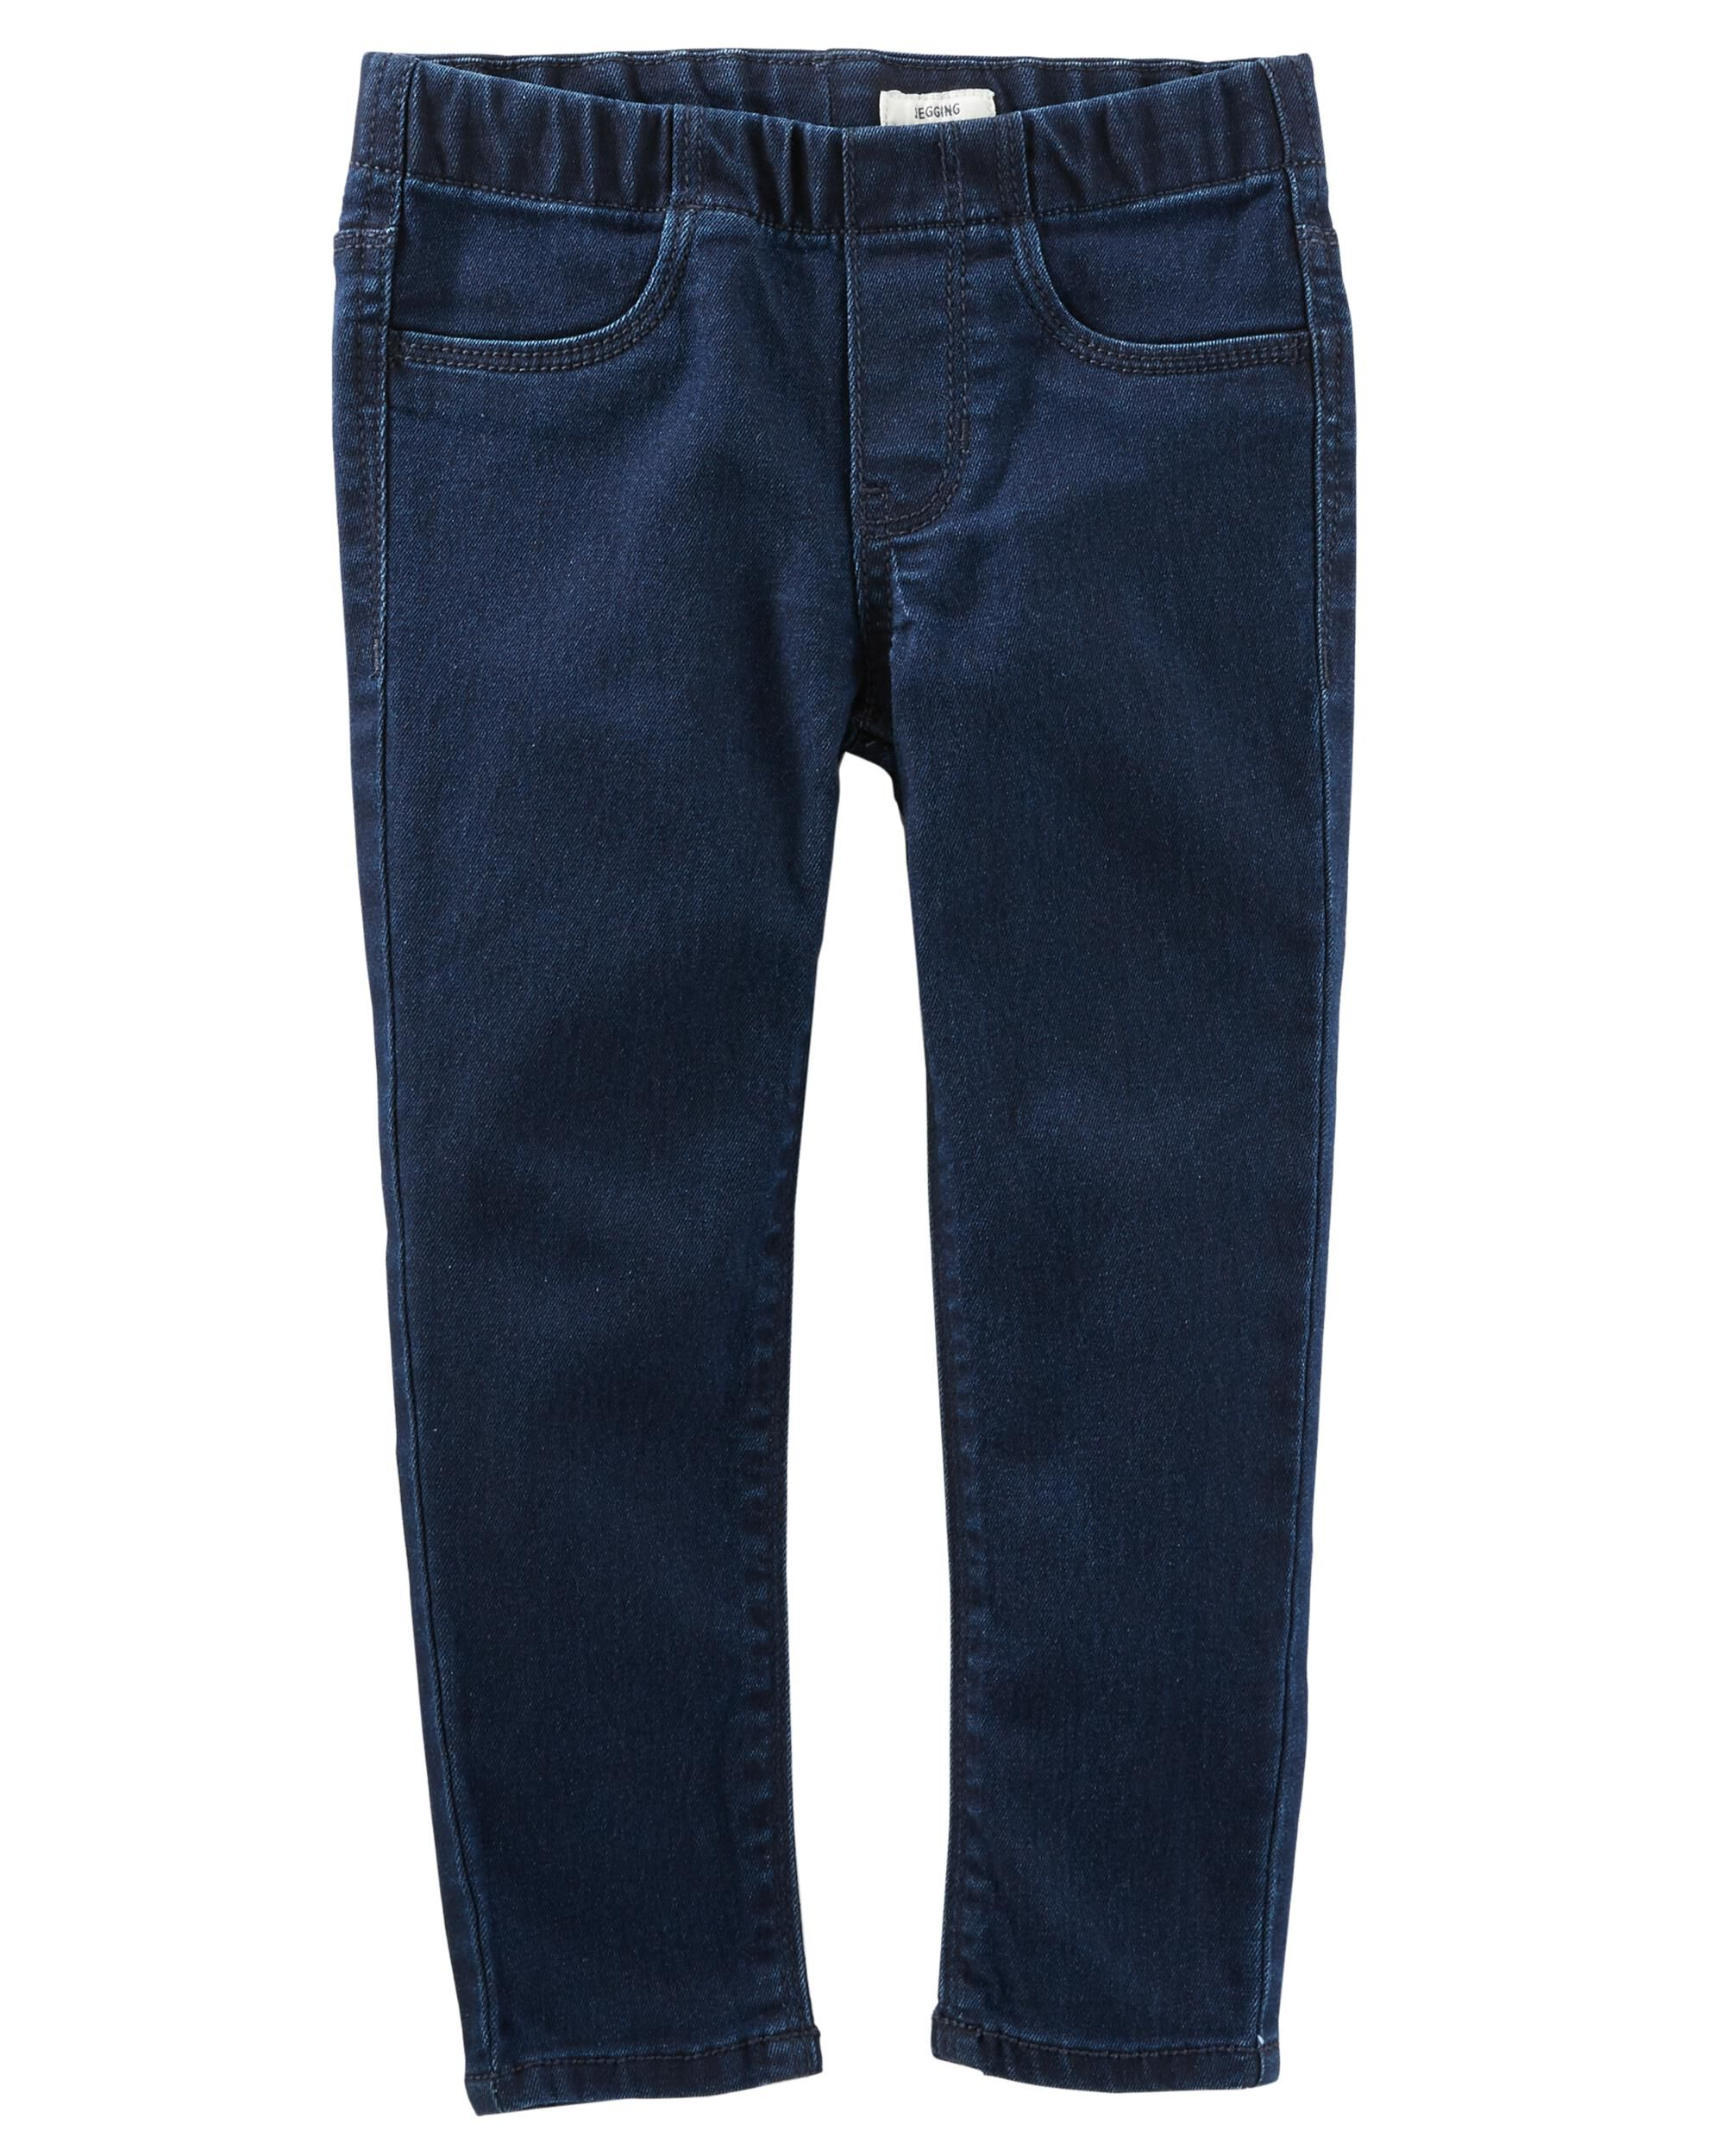 *DOORBUSTER* Pull-On Jeggings - Cornwall Wash